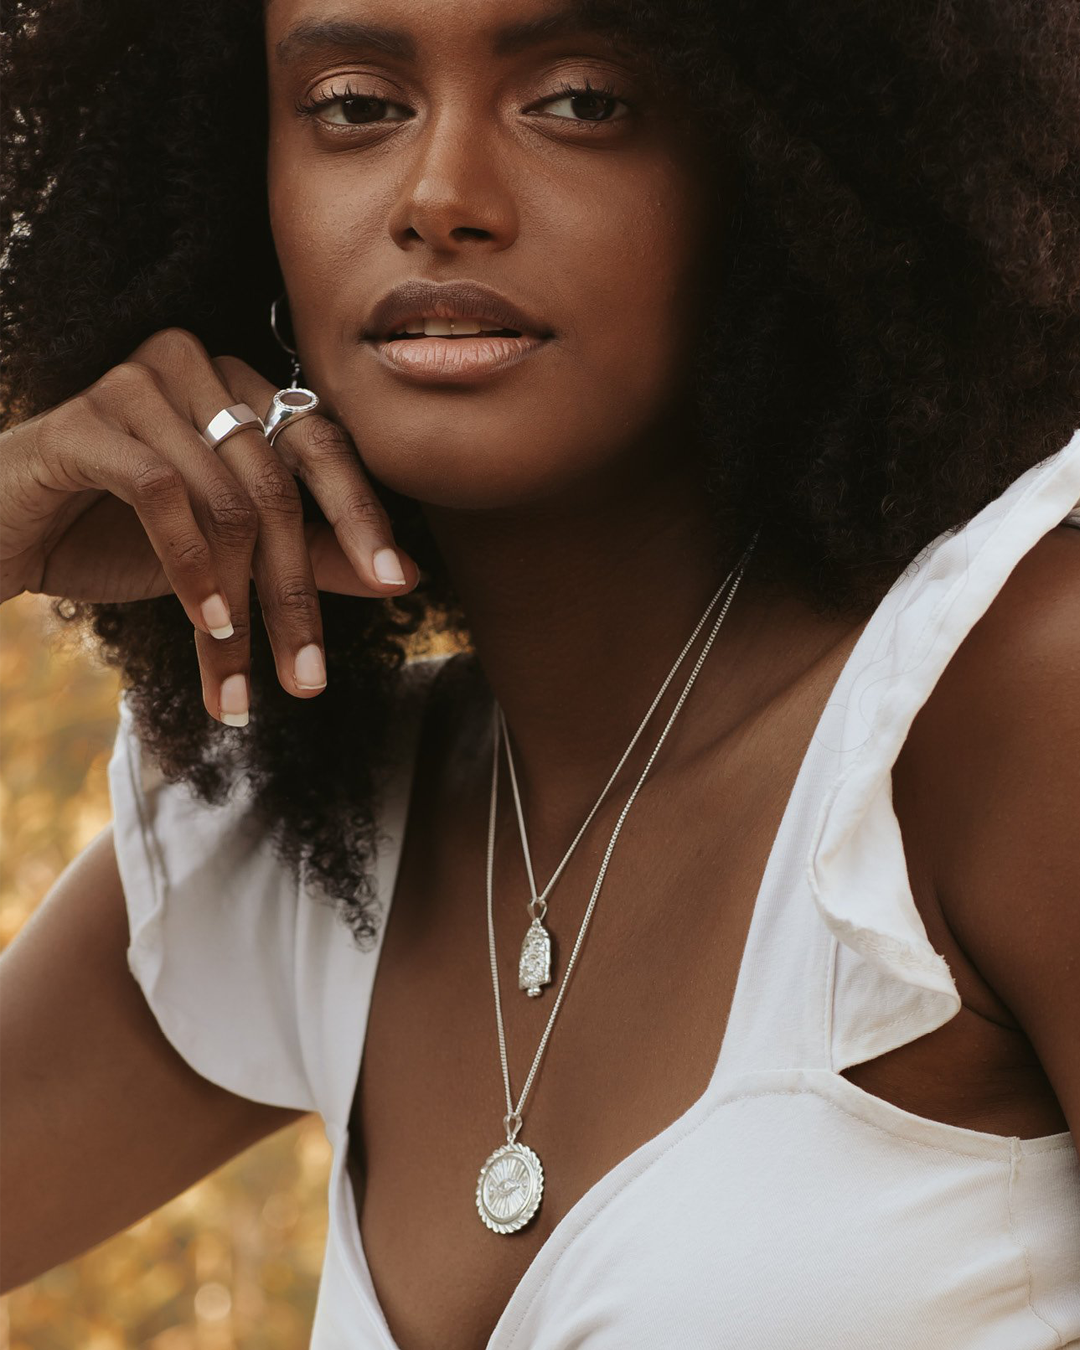 A model wearing a white top and necklaces from Luna & Rose